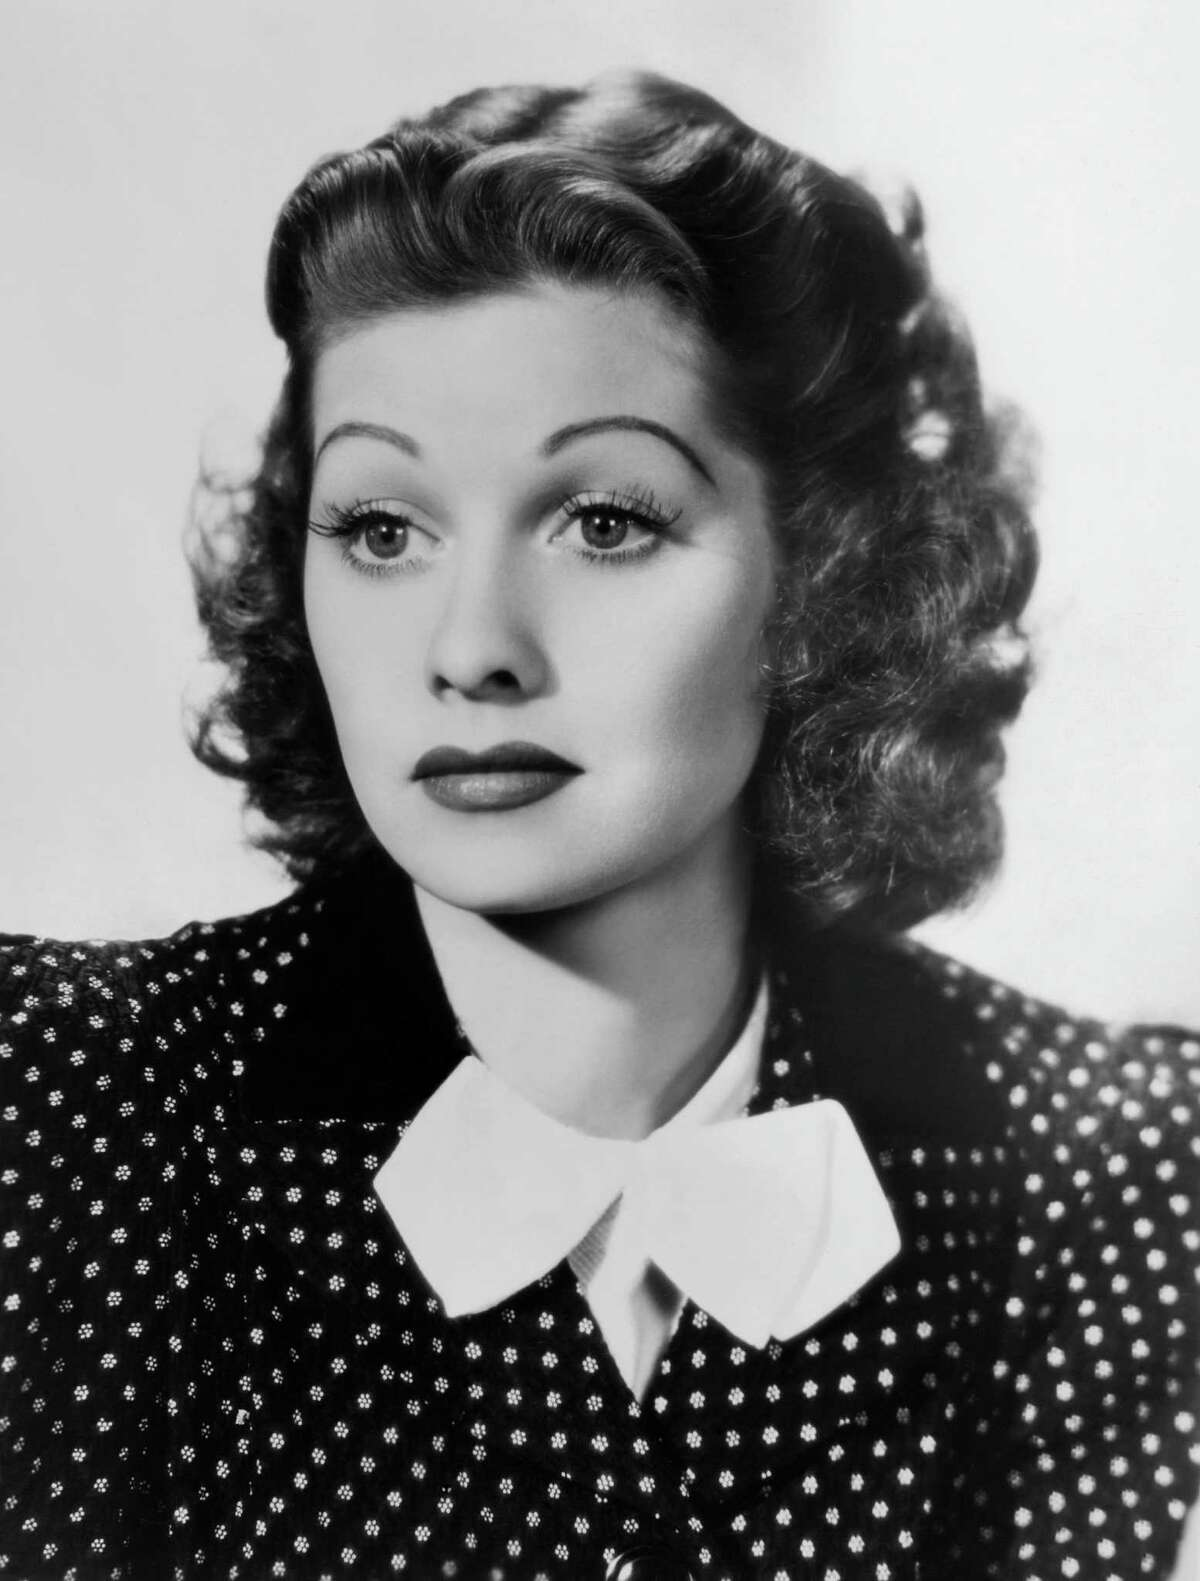 Lucille Ball In an official 1953 US government memorandum, the